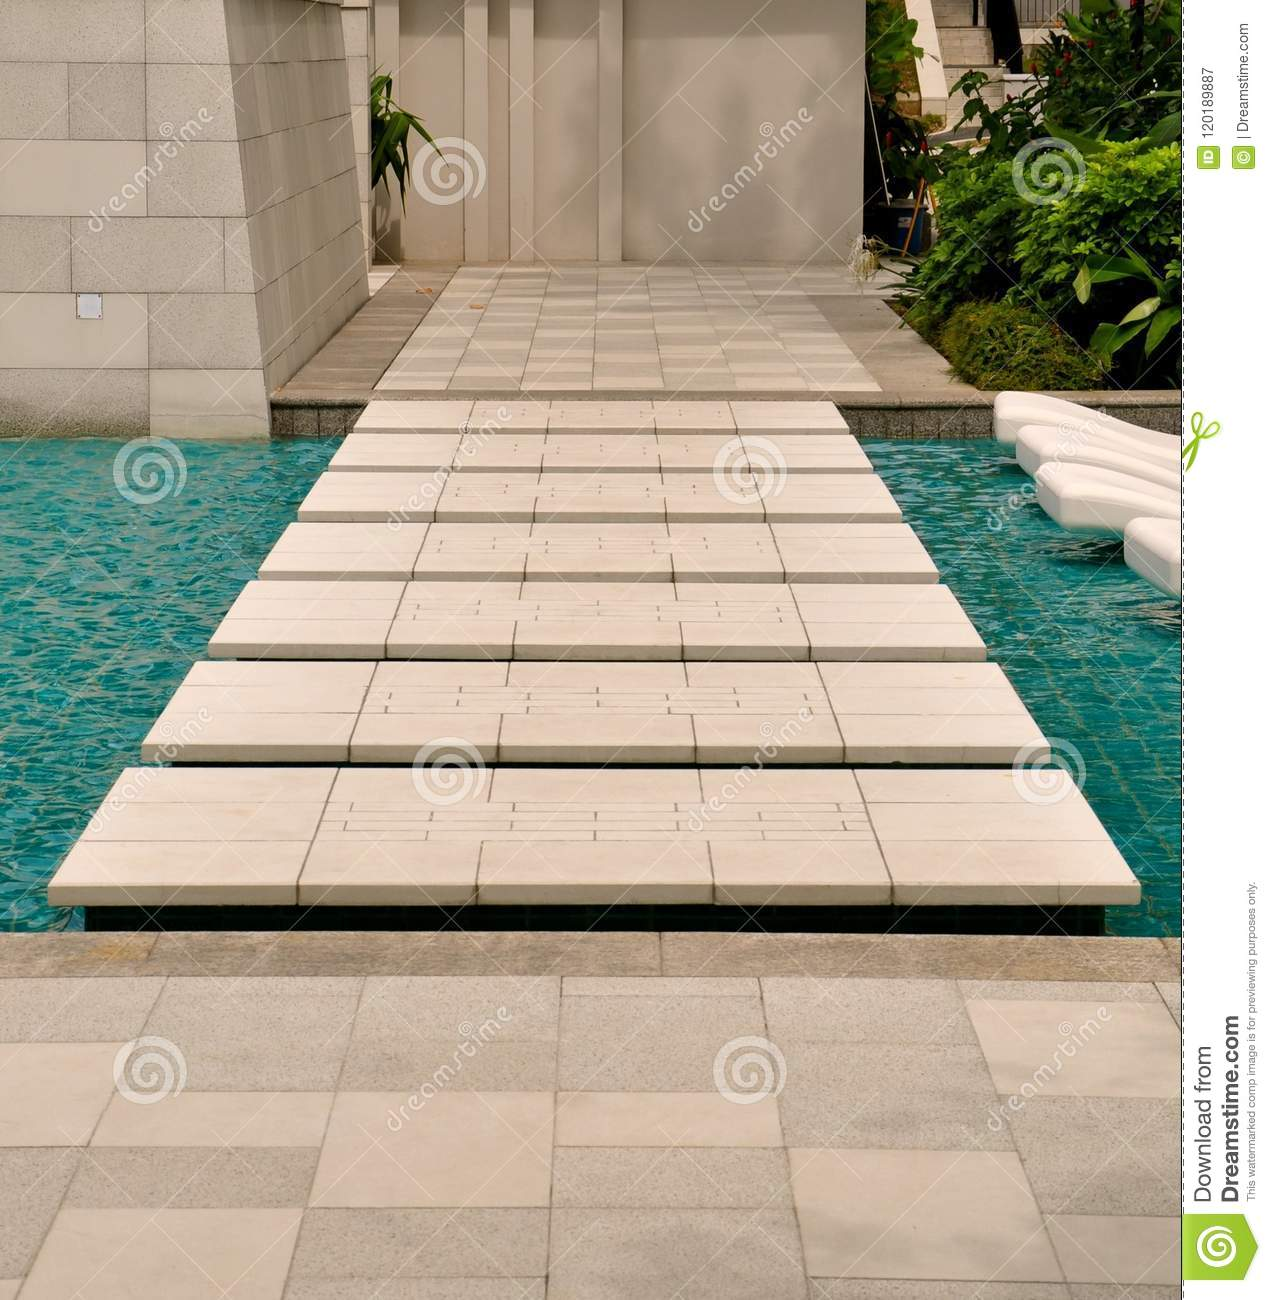 Pathway of large stepping stones